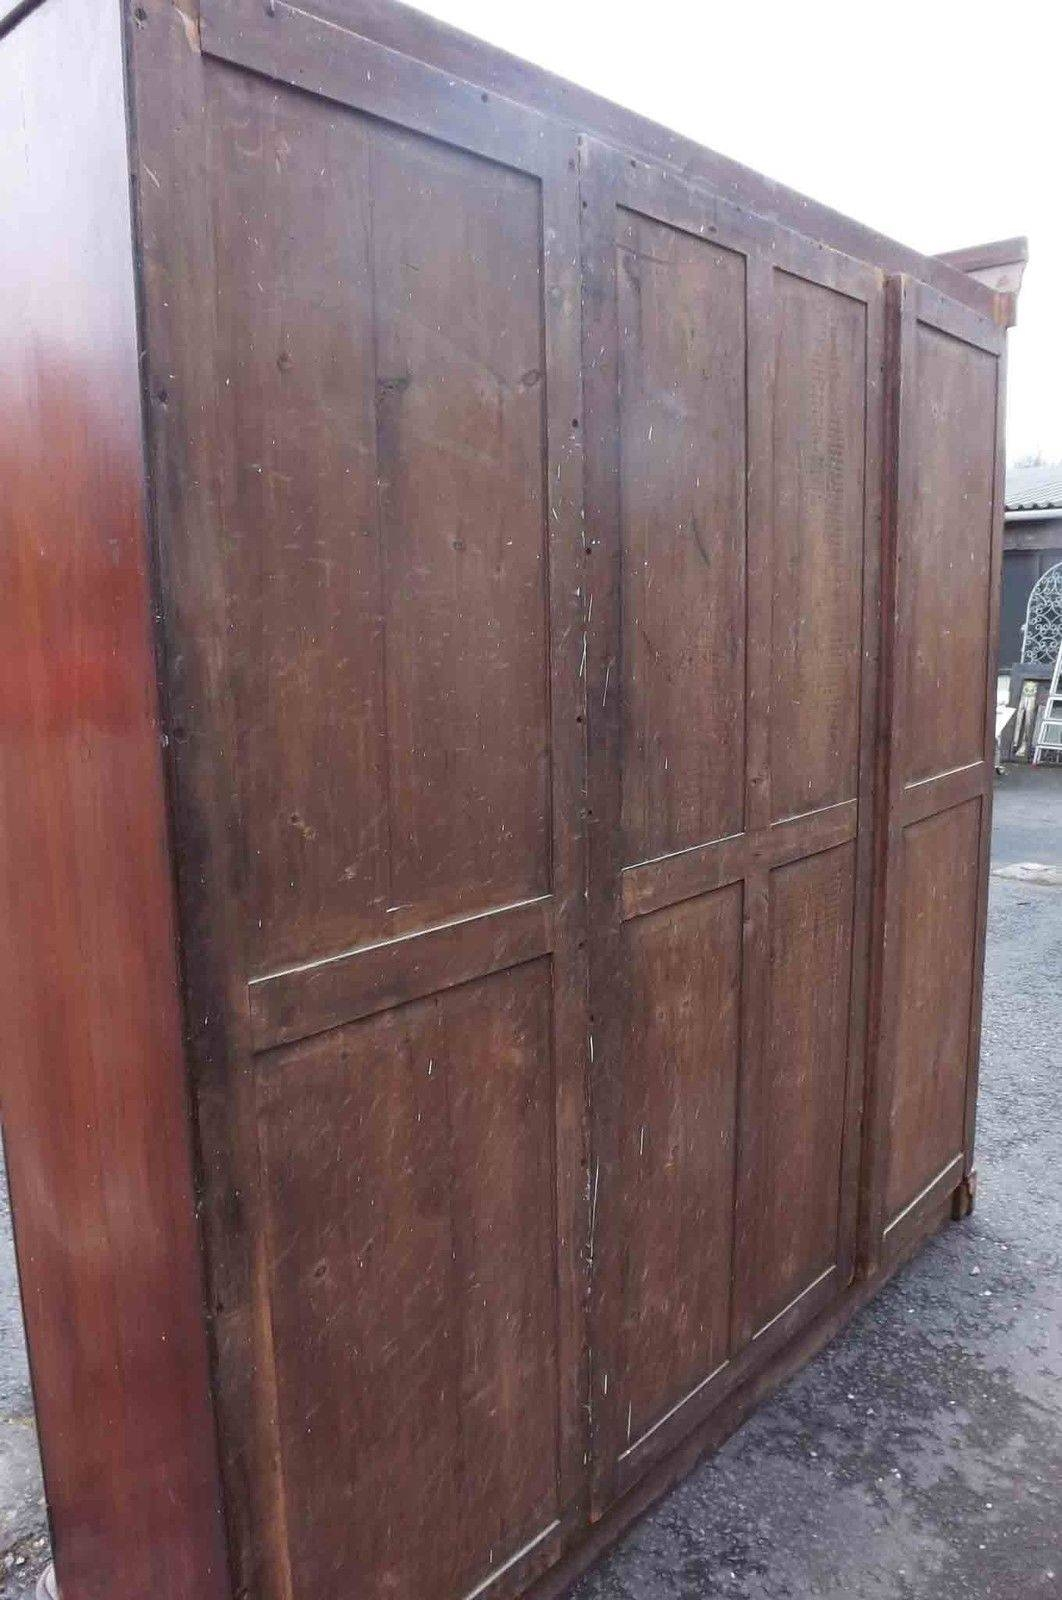 Victorian Mahogany Breakfront Wardrobe For Sale | Antiques with regard to Victorian Breakfront Wardrobe (Image 19 of 30)